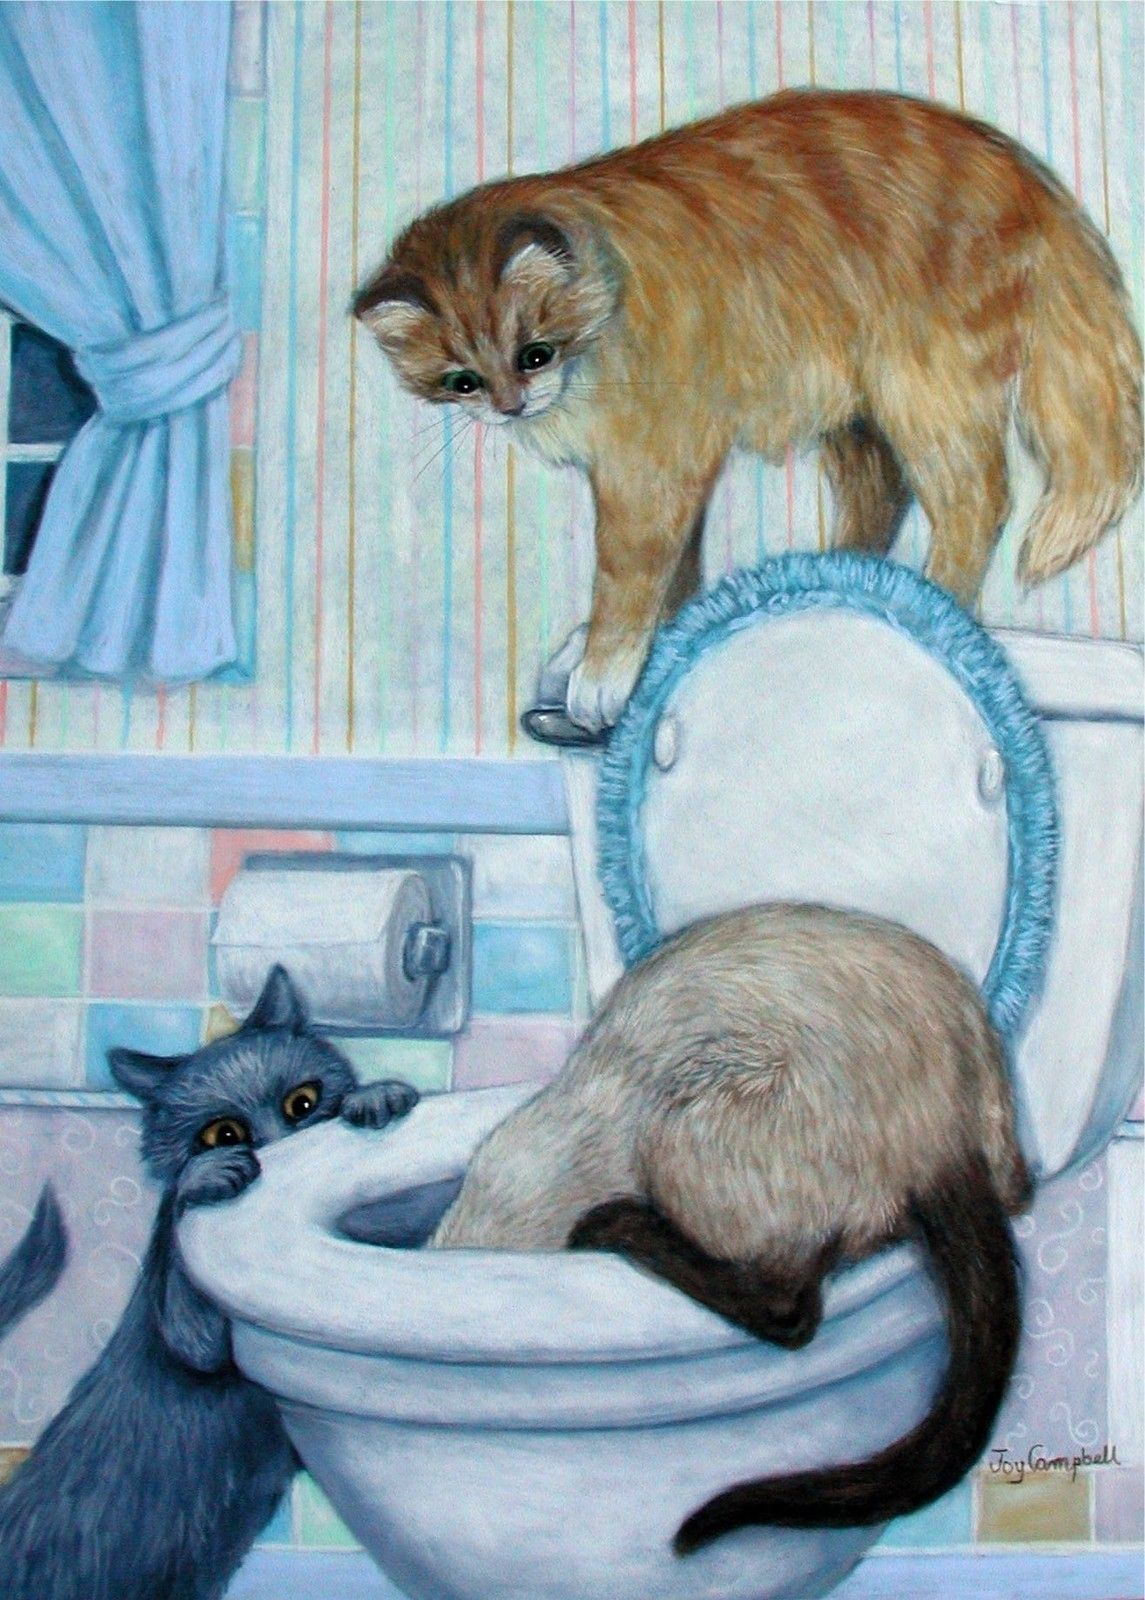 Cats Kittens Flush Toilet Funny Aceo Print From Original Oil By Joy Campbell Ebay Cat Art Illustration Cat Artwork Cats And Kittens